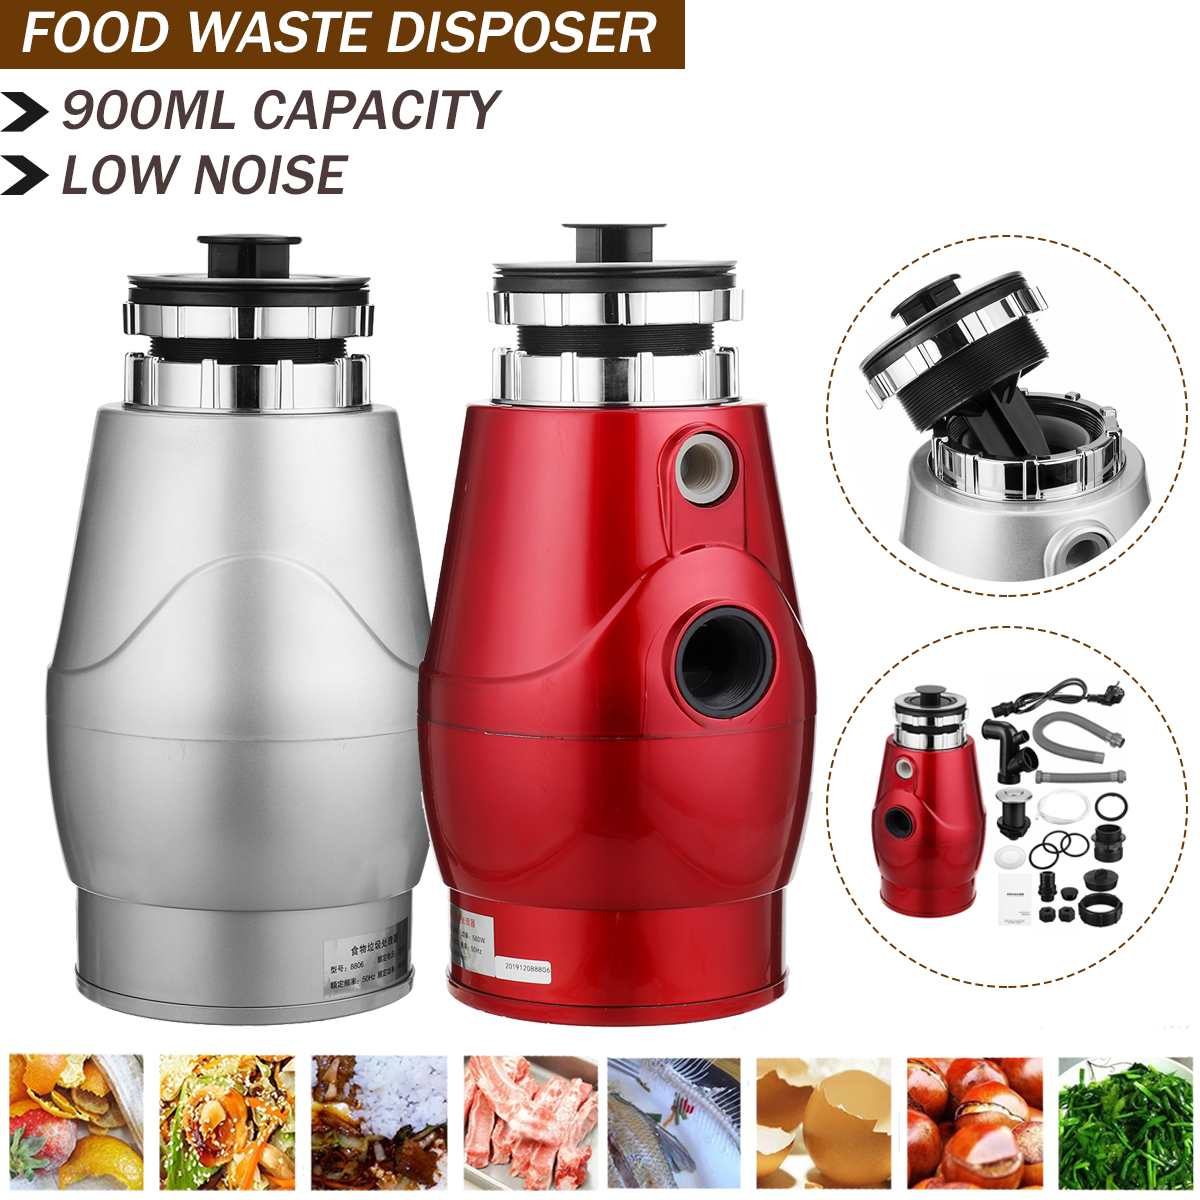 Kitchen food garbage processor disposal crusher food waste disposer Stainless steel Grinder material kitchen sink appliance